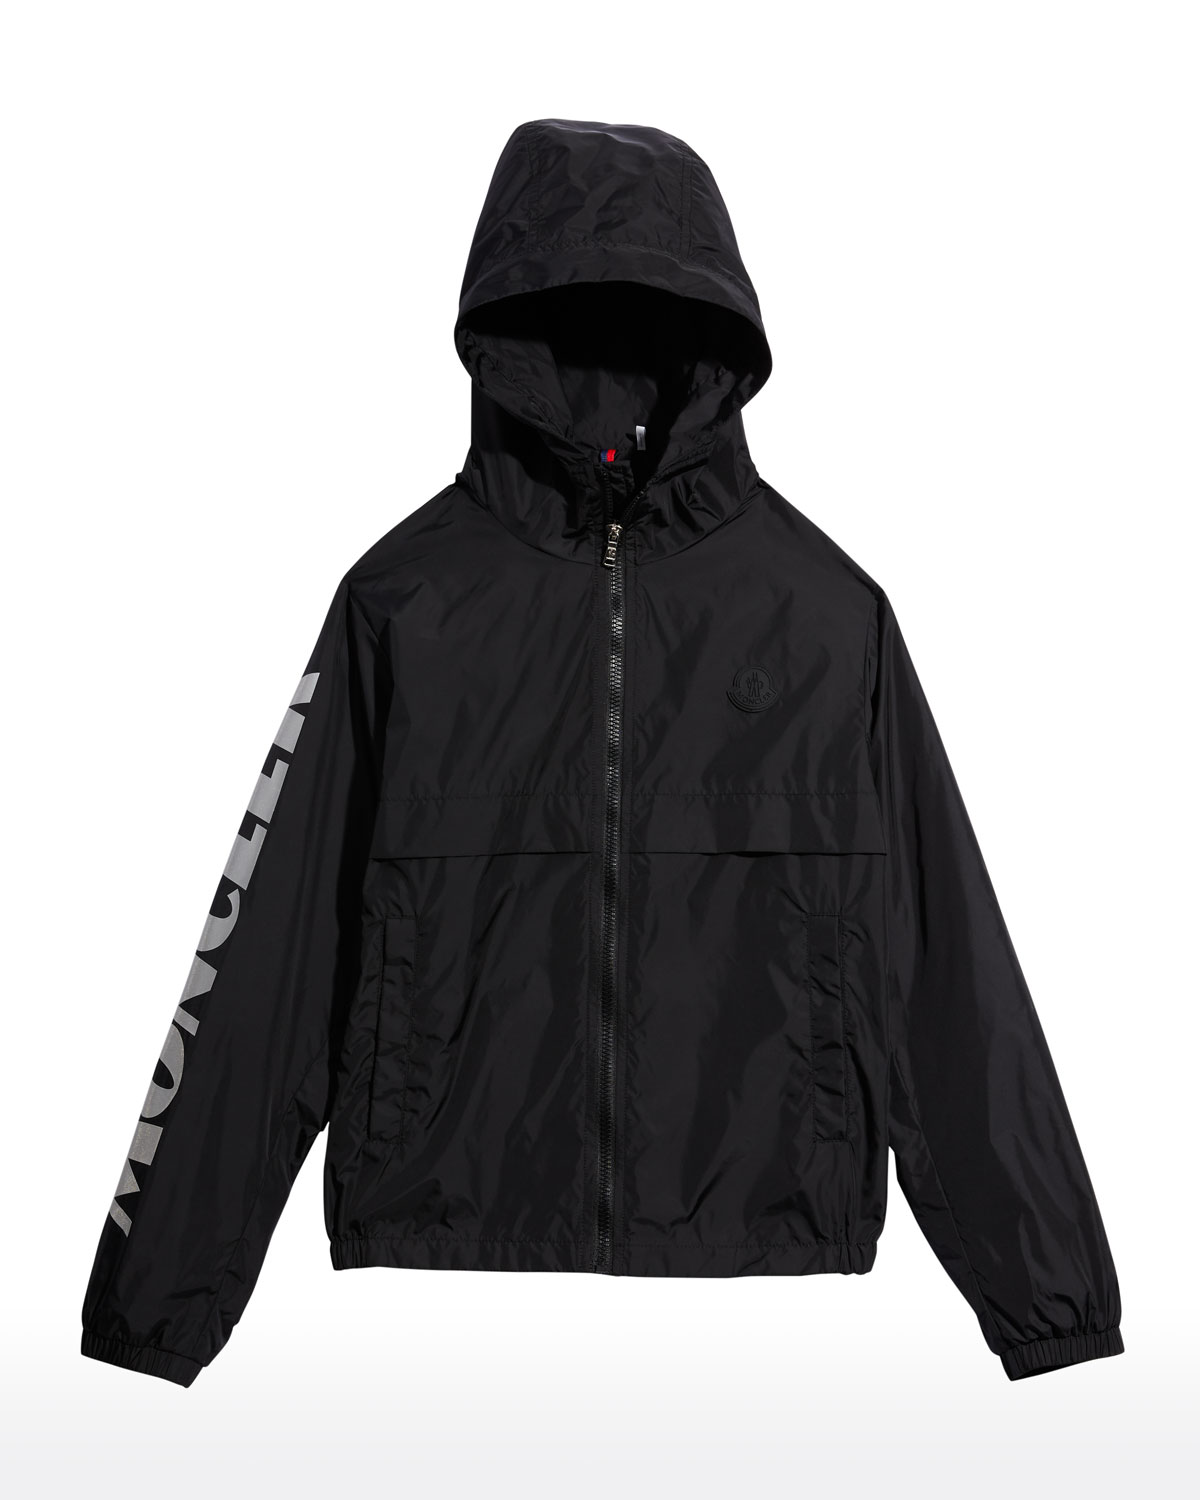 Moncler BOY'S SAXOPHONE LOGO-PRINT HOODED JACKET